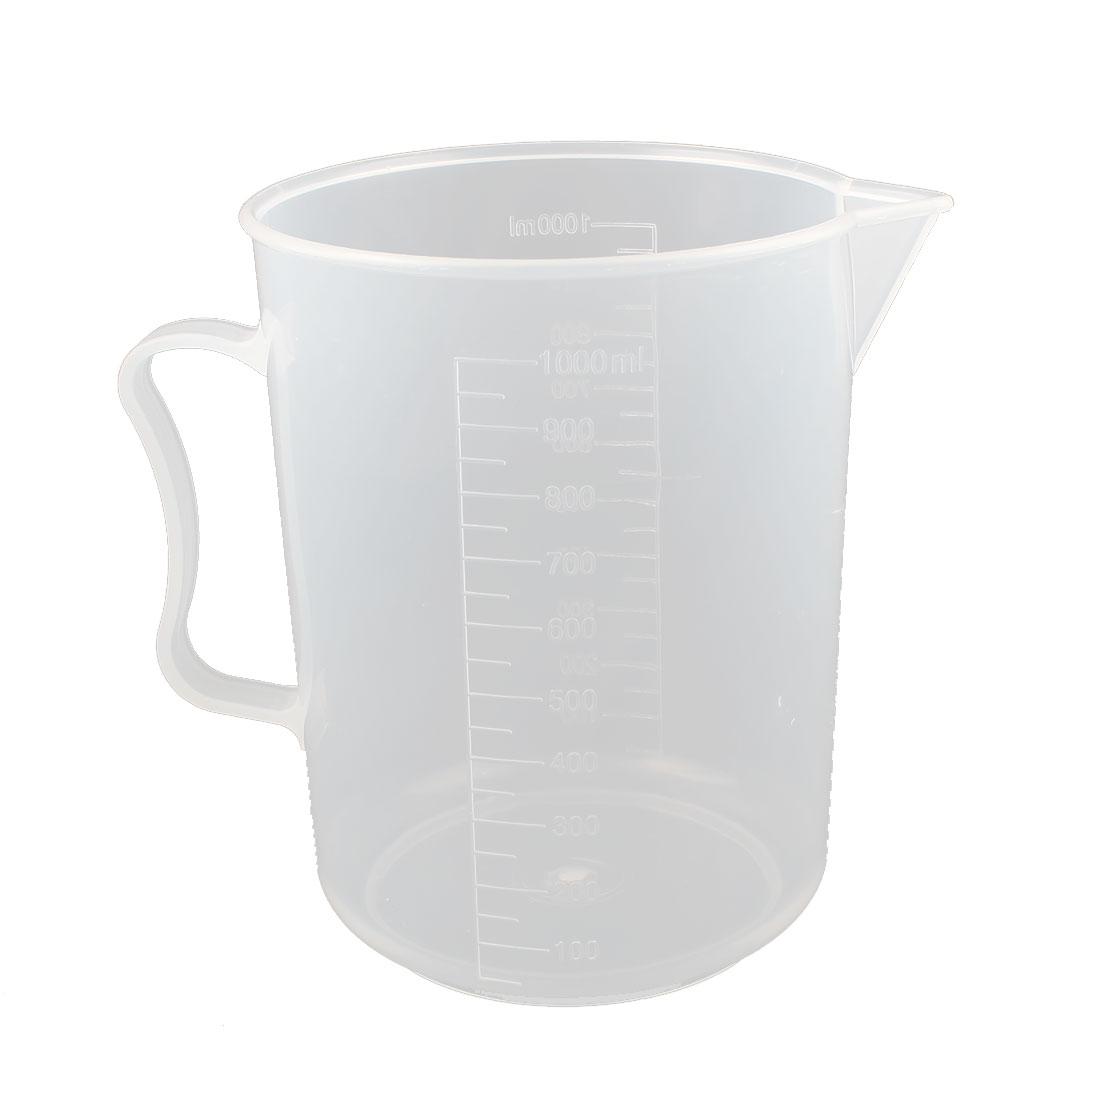 Laboratory Test Clear Plastic Graduated Measuring Beaker Cup Mug Container